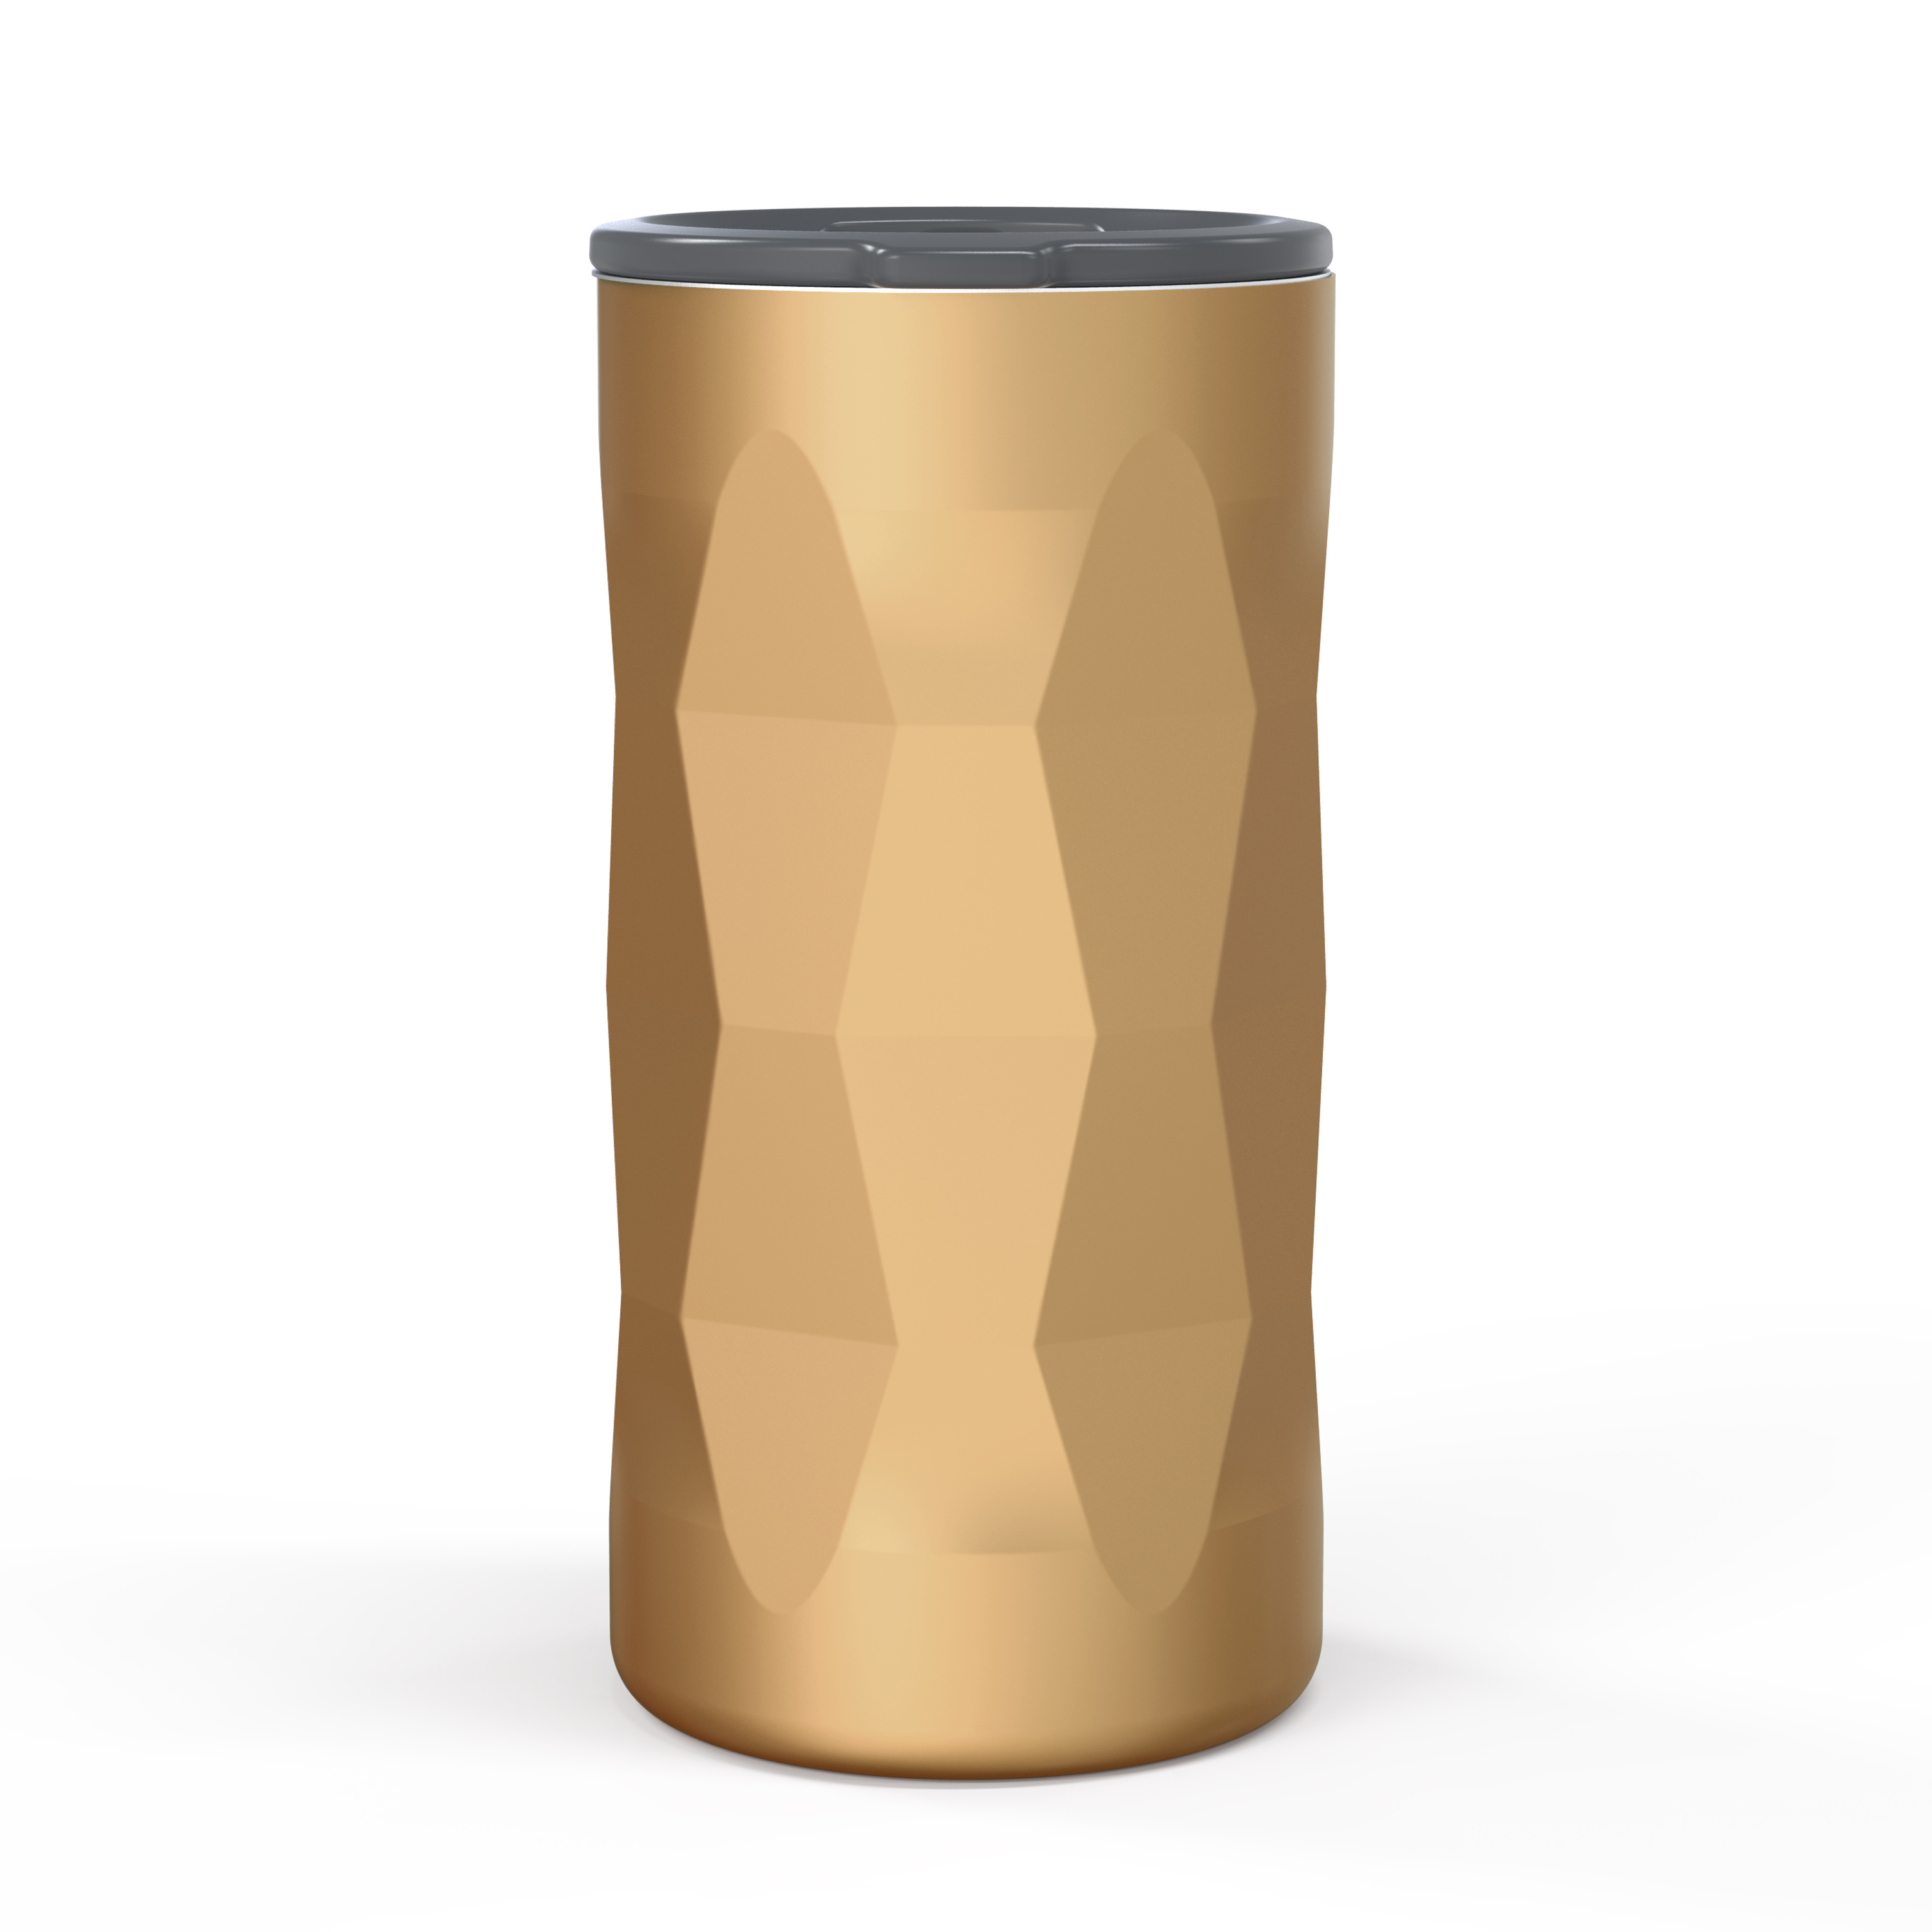 Fractal 12 ounce Vacuum Insulated Stainless Steel Tumbler, Copper slideshow image 5